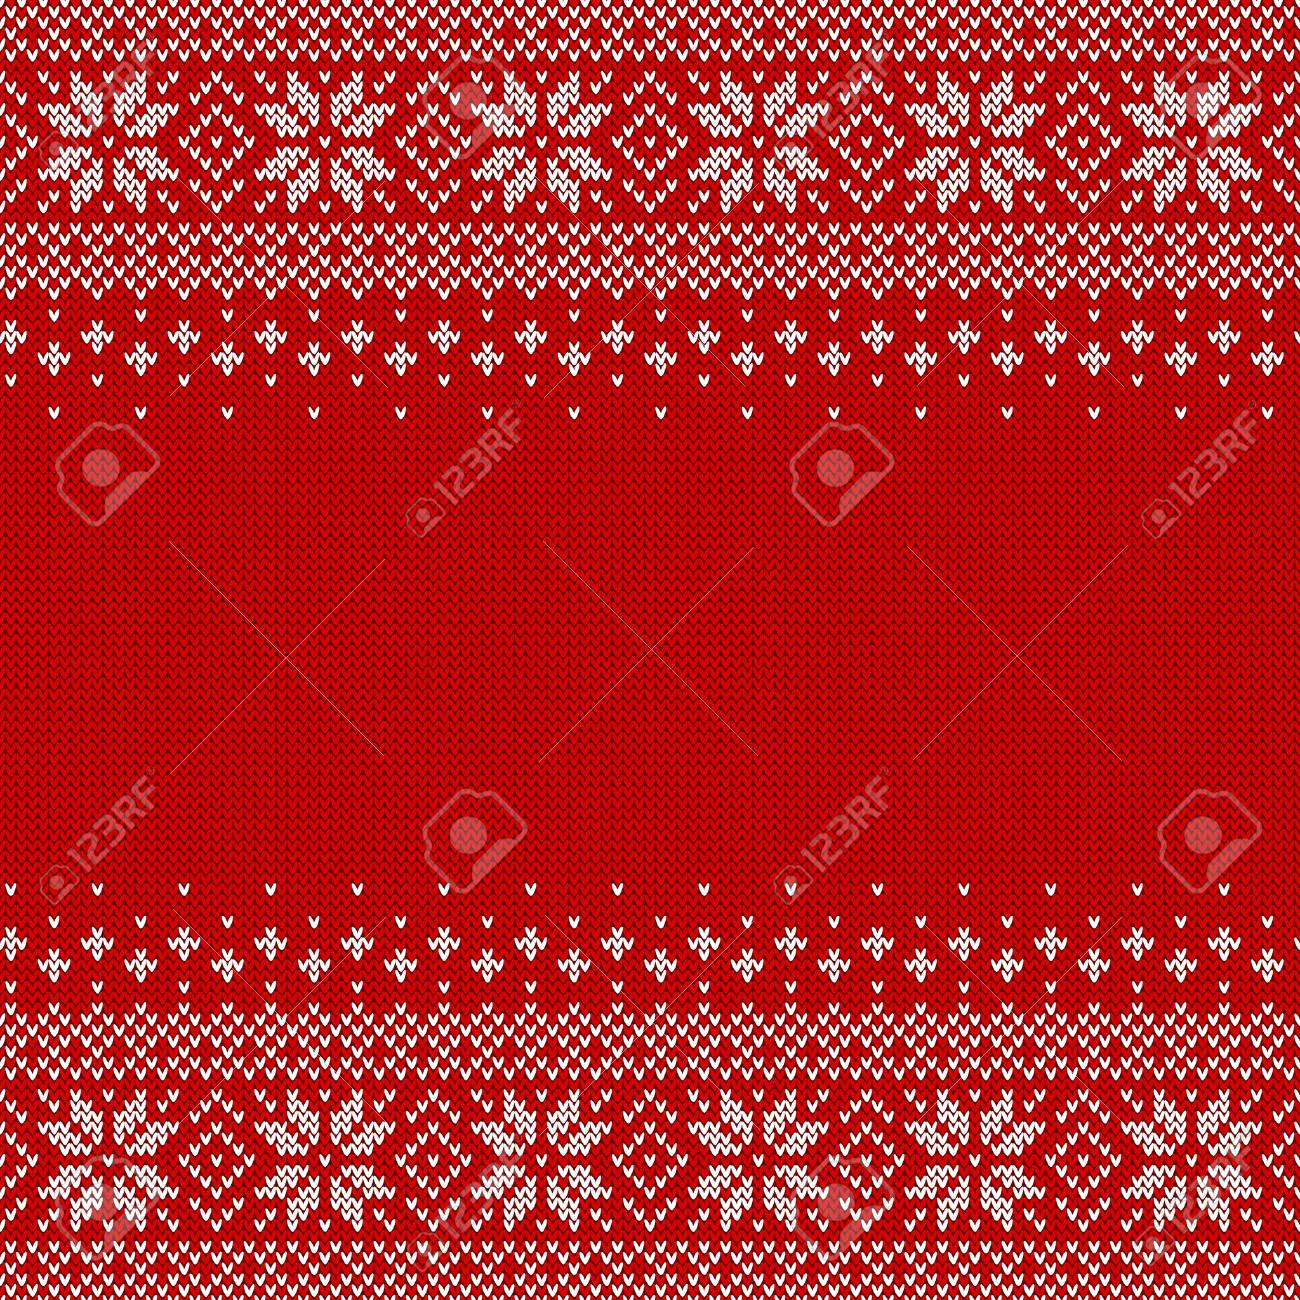 Knitted seamless background with copyspace. Red and white sweater pattern for Christmas or winter design. Traditional scandinavian ornament with place for text. Vector illustration. - 90337957